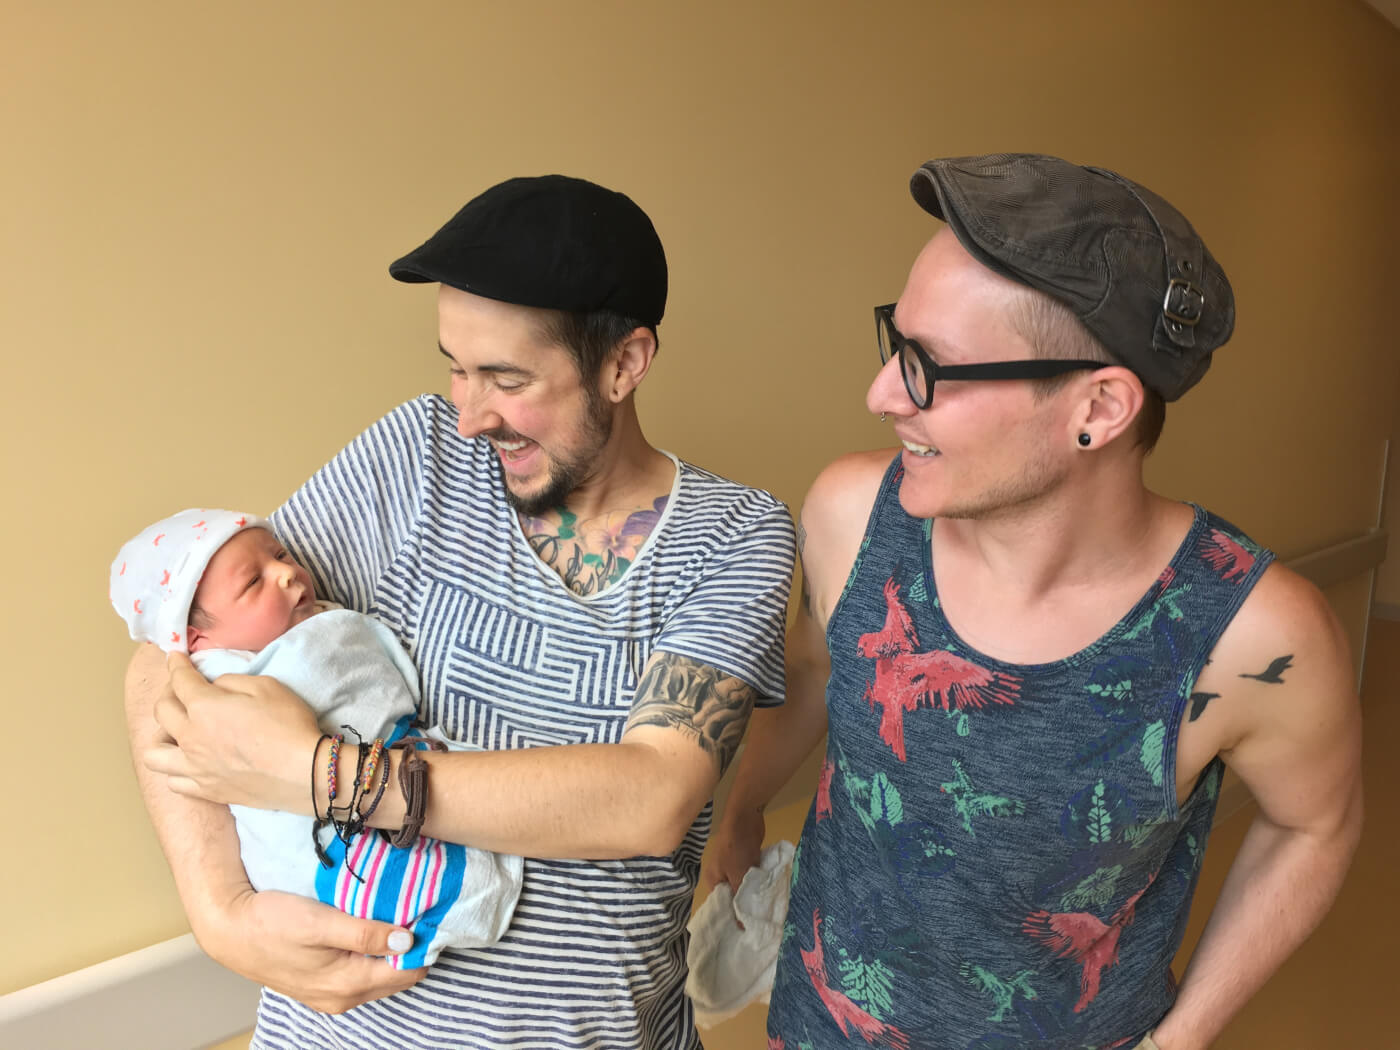 Trystan & Biff stand together smiling, Trystan holds his newborn and Biff stands beside them.